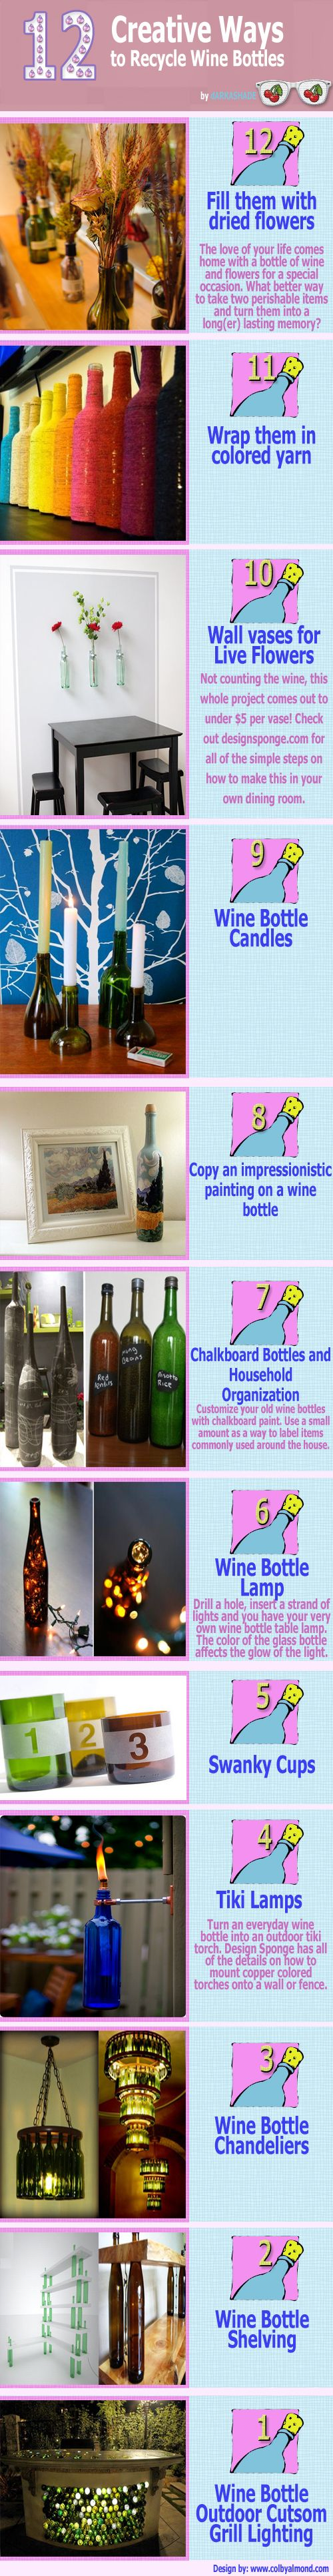 recycling wine bottles